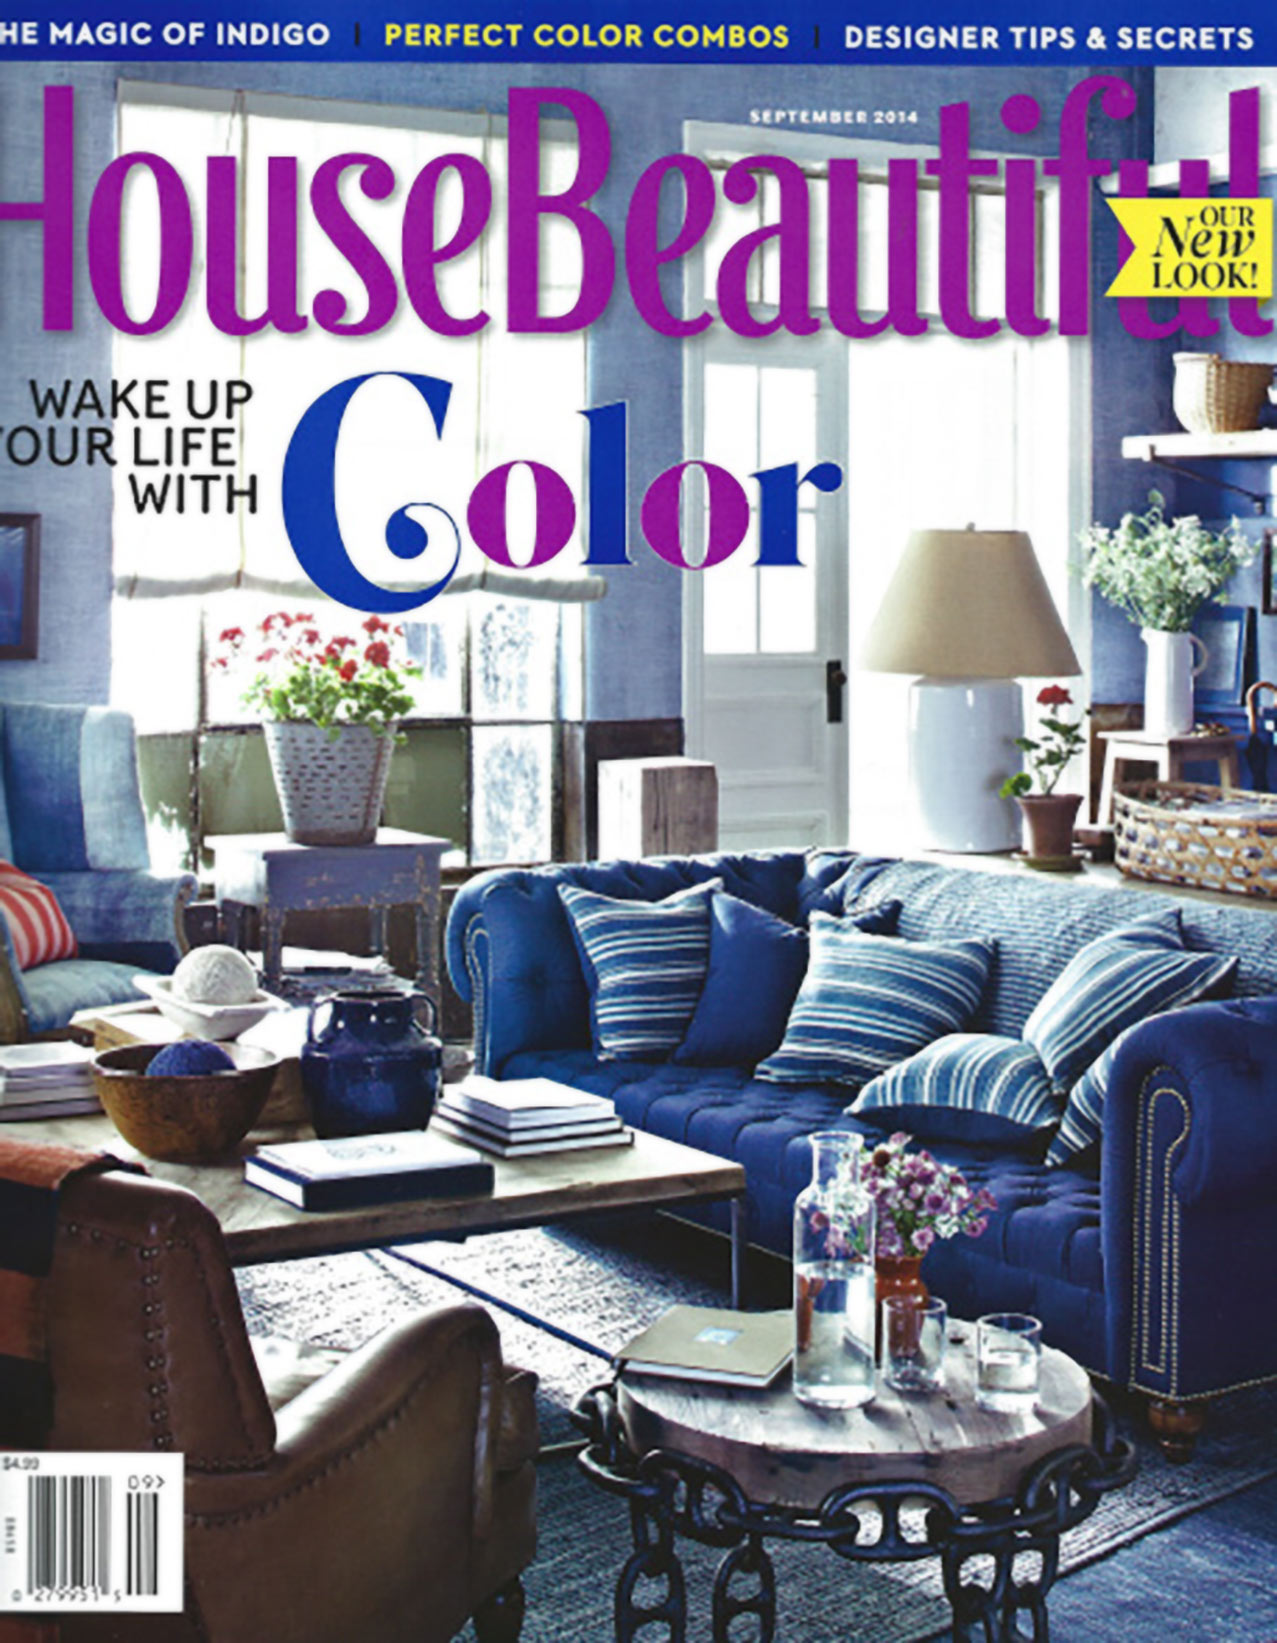 House-Beautiful-cover_new